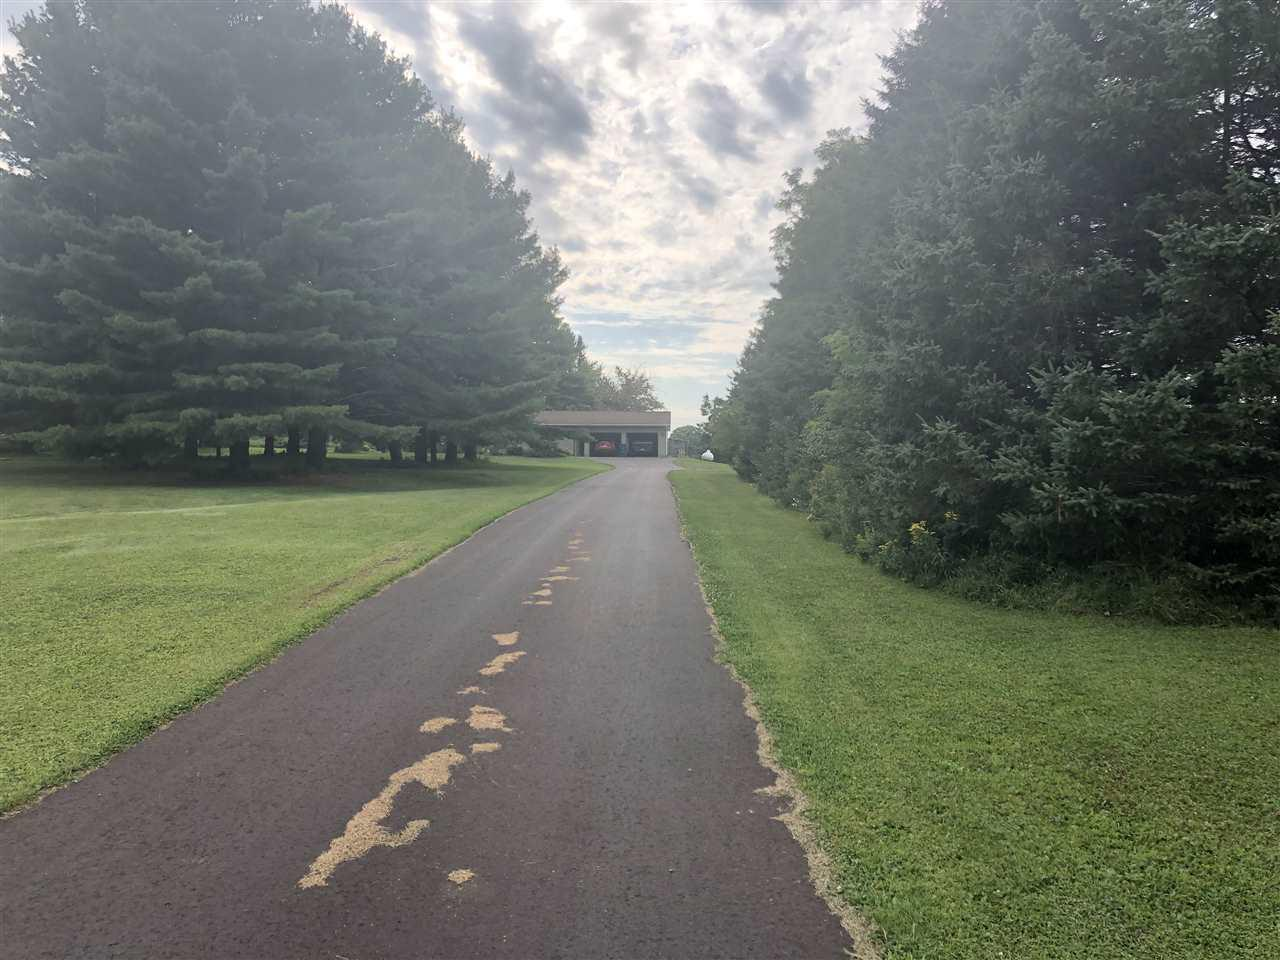 3 bedroom county home on 5.236 acres, 30x80 horse stable with concrete floors, power, water and matted stalls, 30x80 1/2 hay loft building, 24x48 concrete floor chicken coop with electric. Plenty of space for a Hobby Farm. Yard also has apple trees, grape vines and garden area.